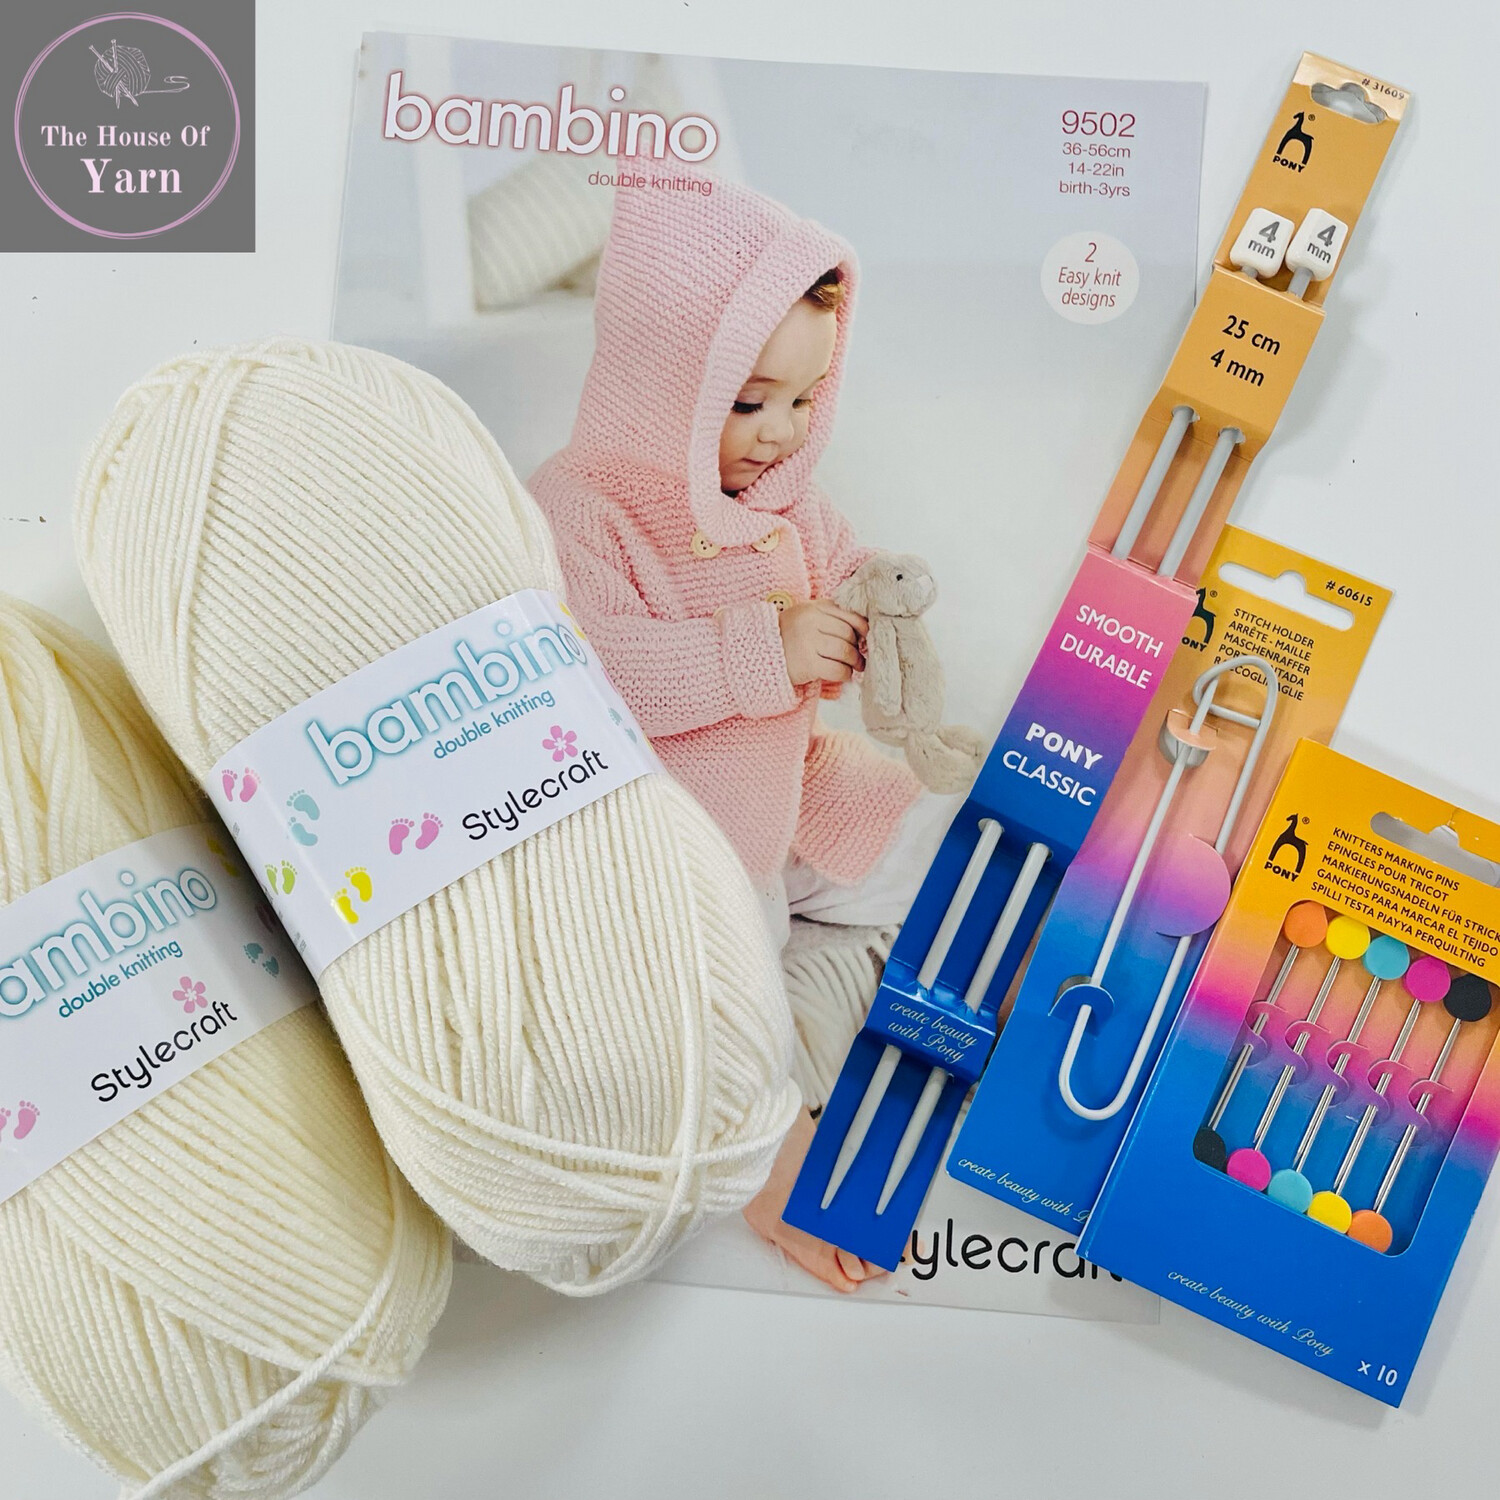 Stylecraft Bambino DK Pattern 9502 Coats 0-3 years Complete Knitting Kit including all required yarn and knitting accessories